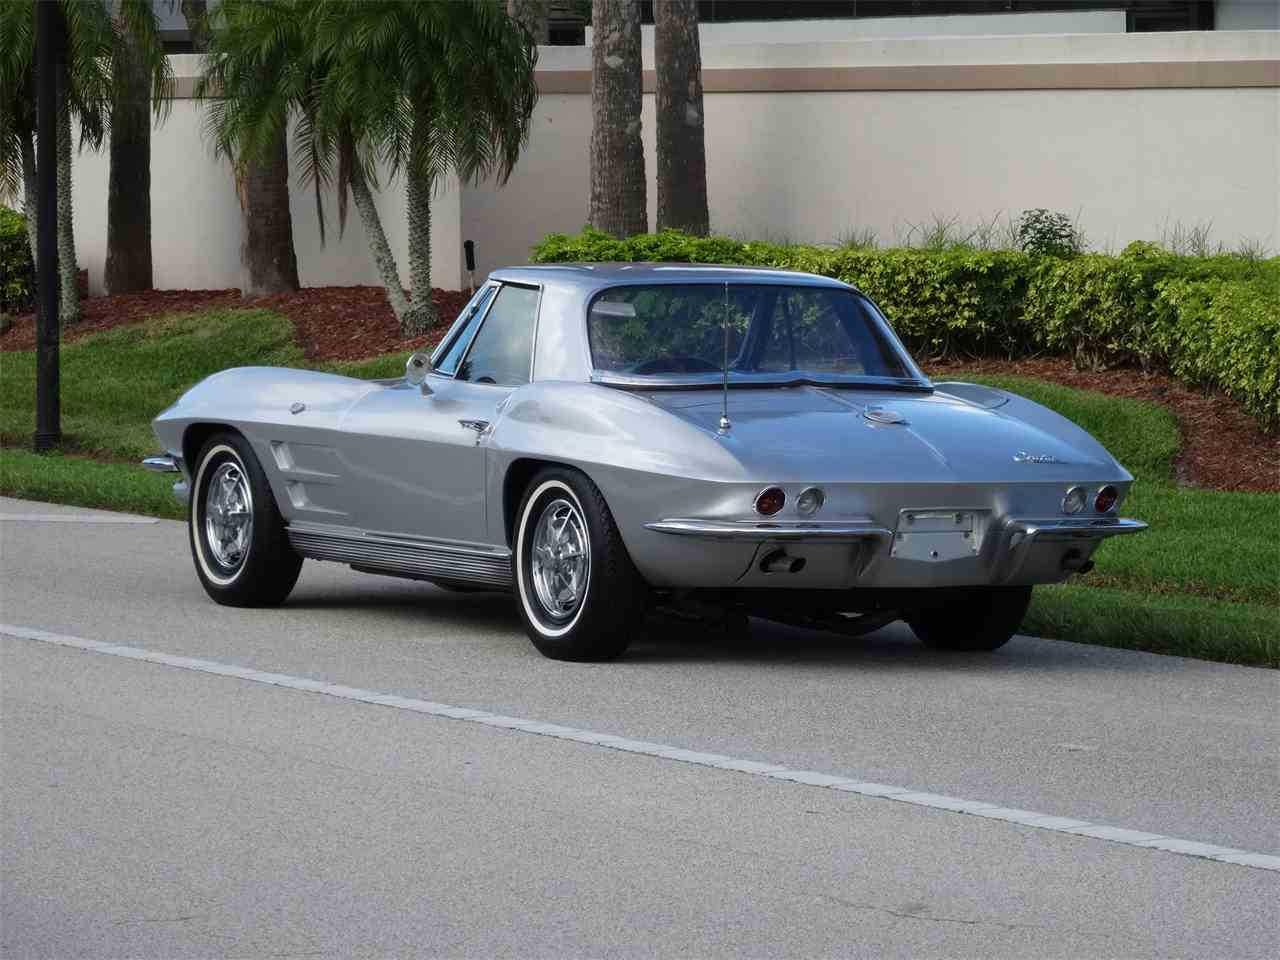 Large Picture of '63 Chevrolet Corvette located in Florida Offered by a Private Seller - LSN0